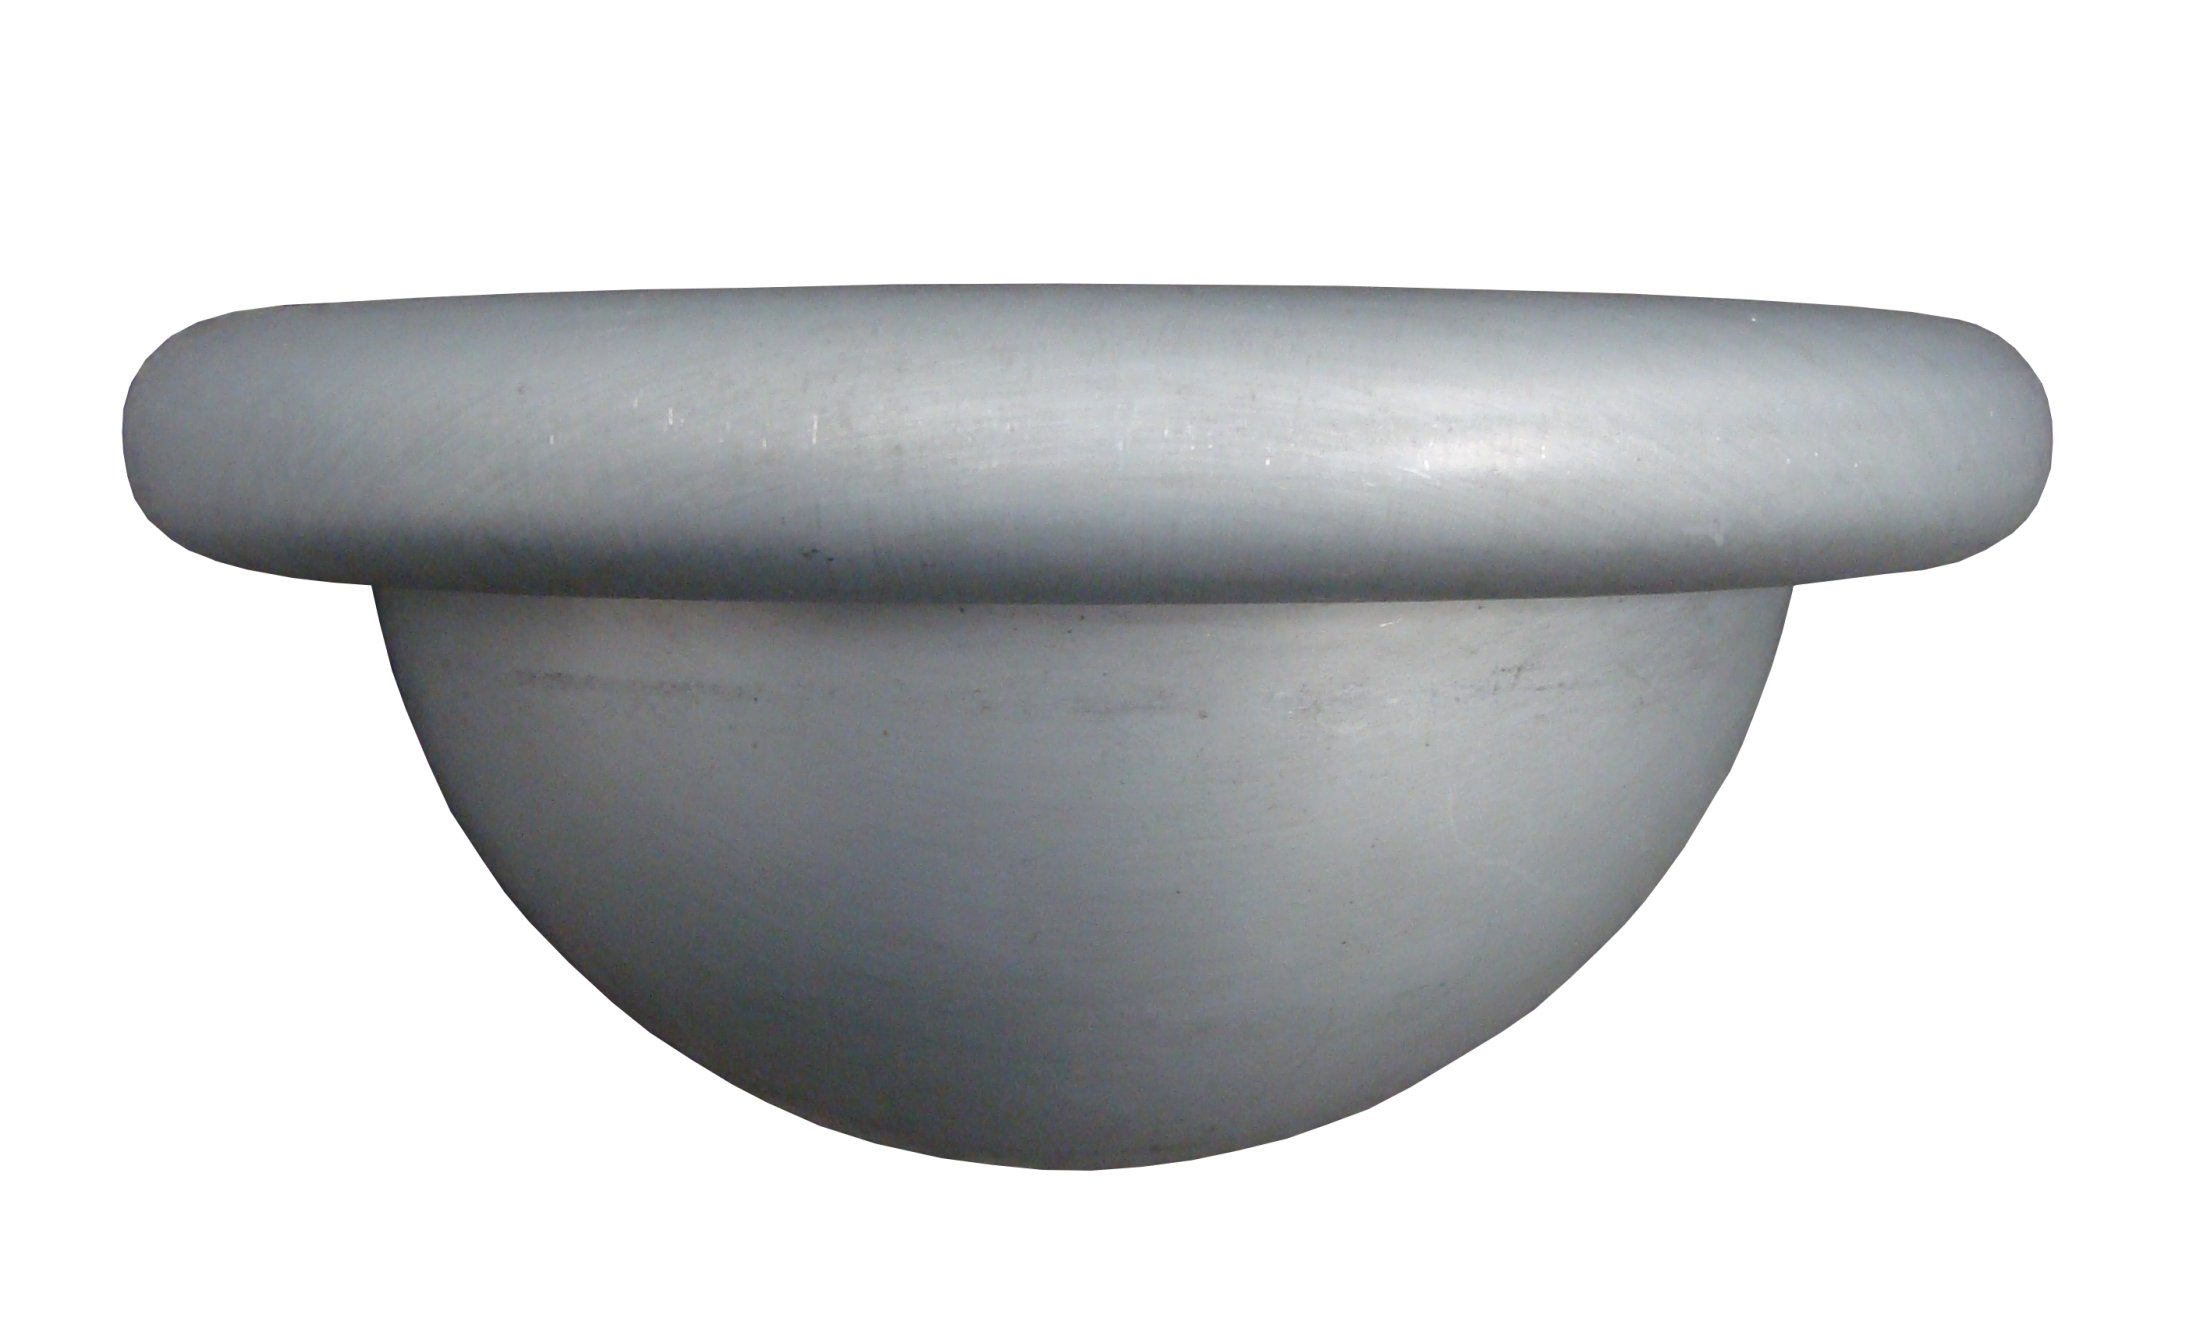 Preweathered Zinc Spherical End Cap